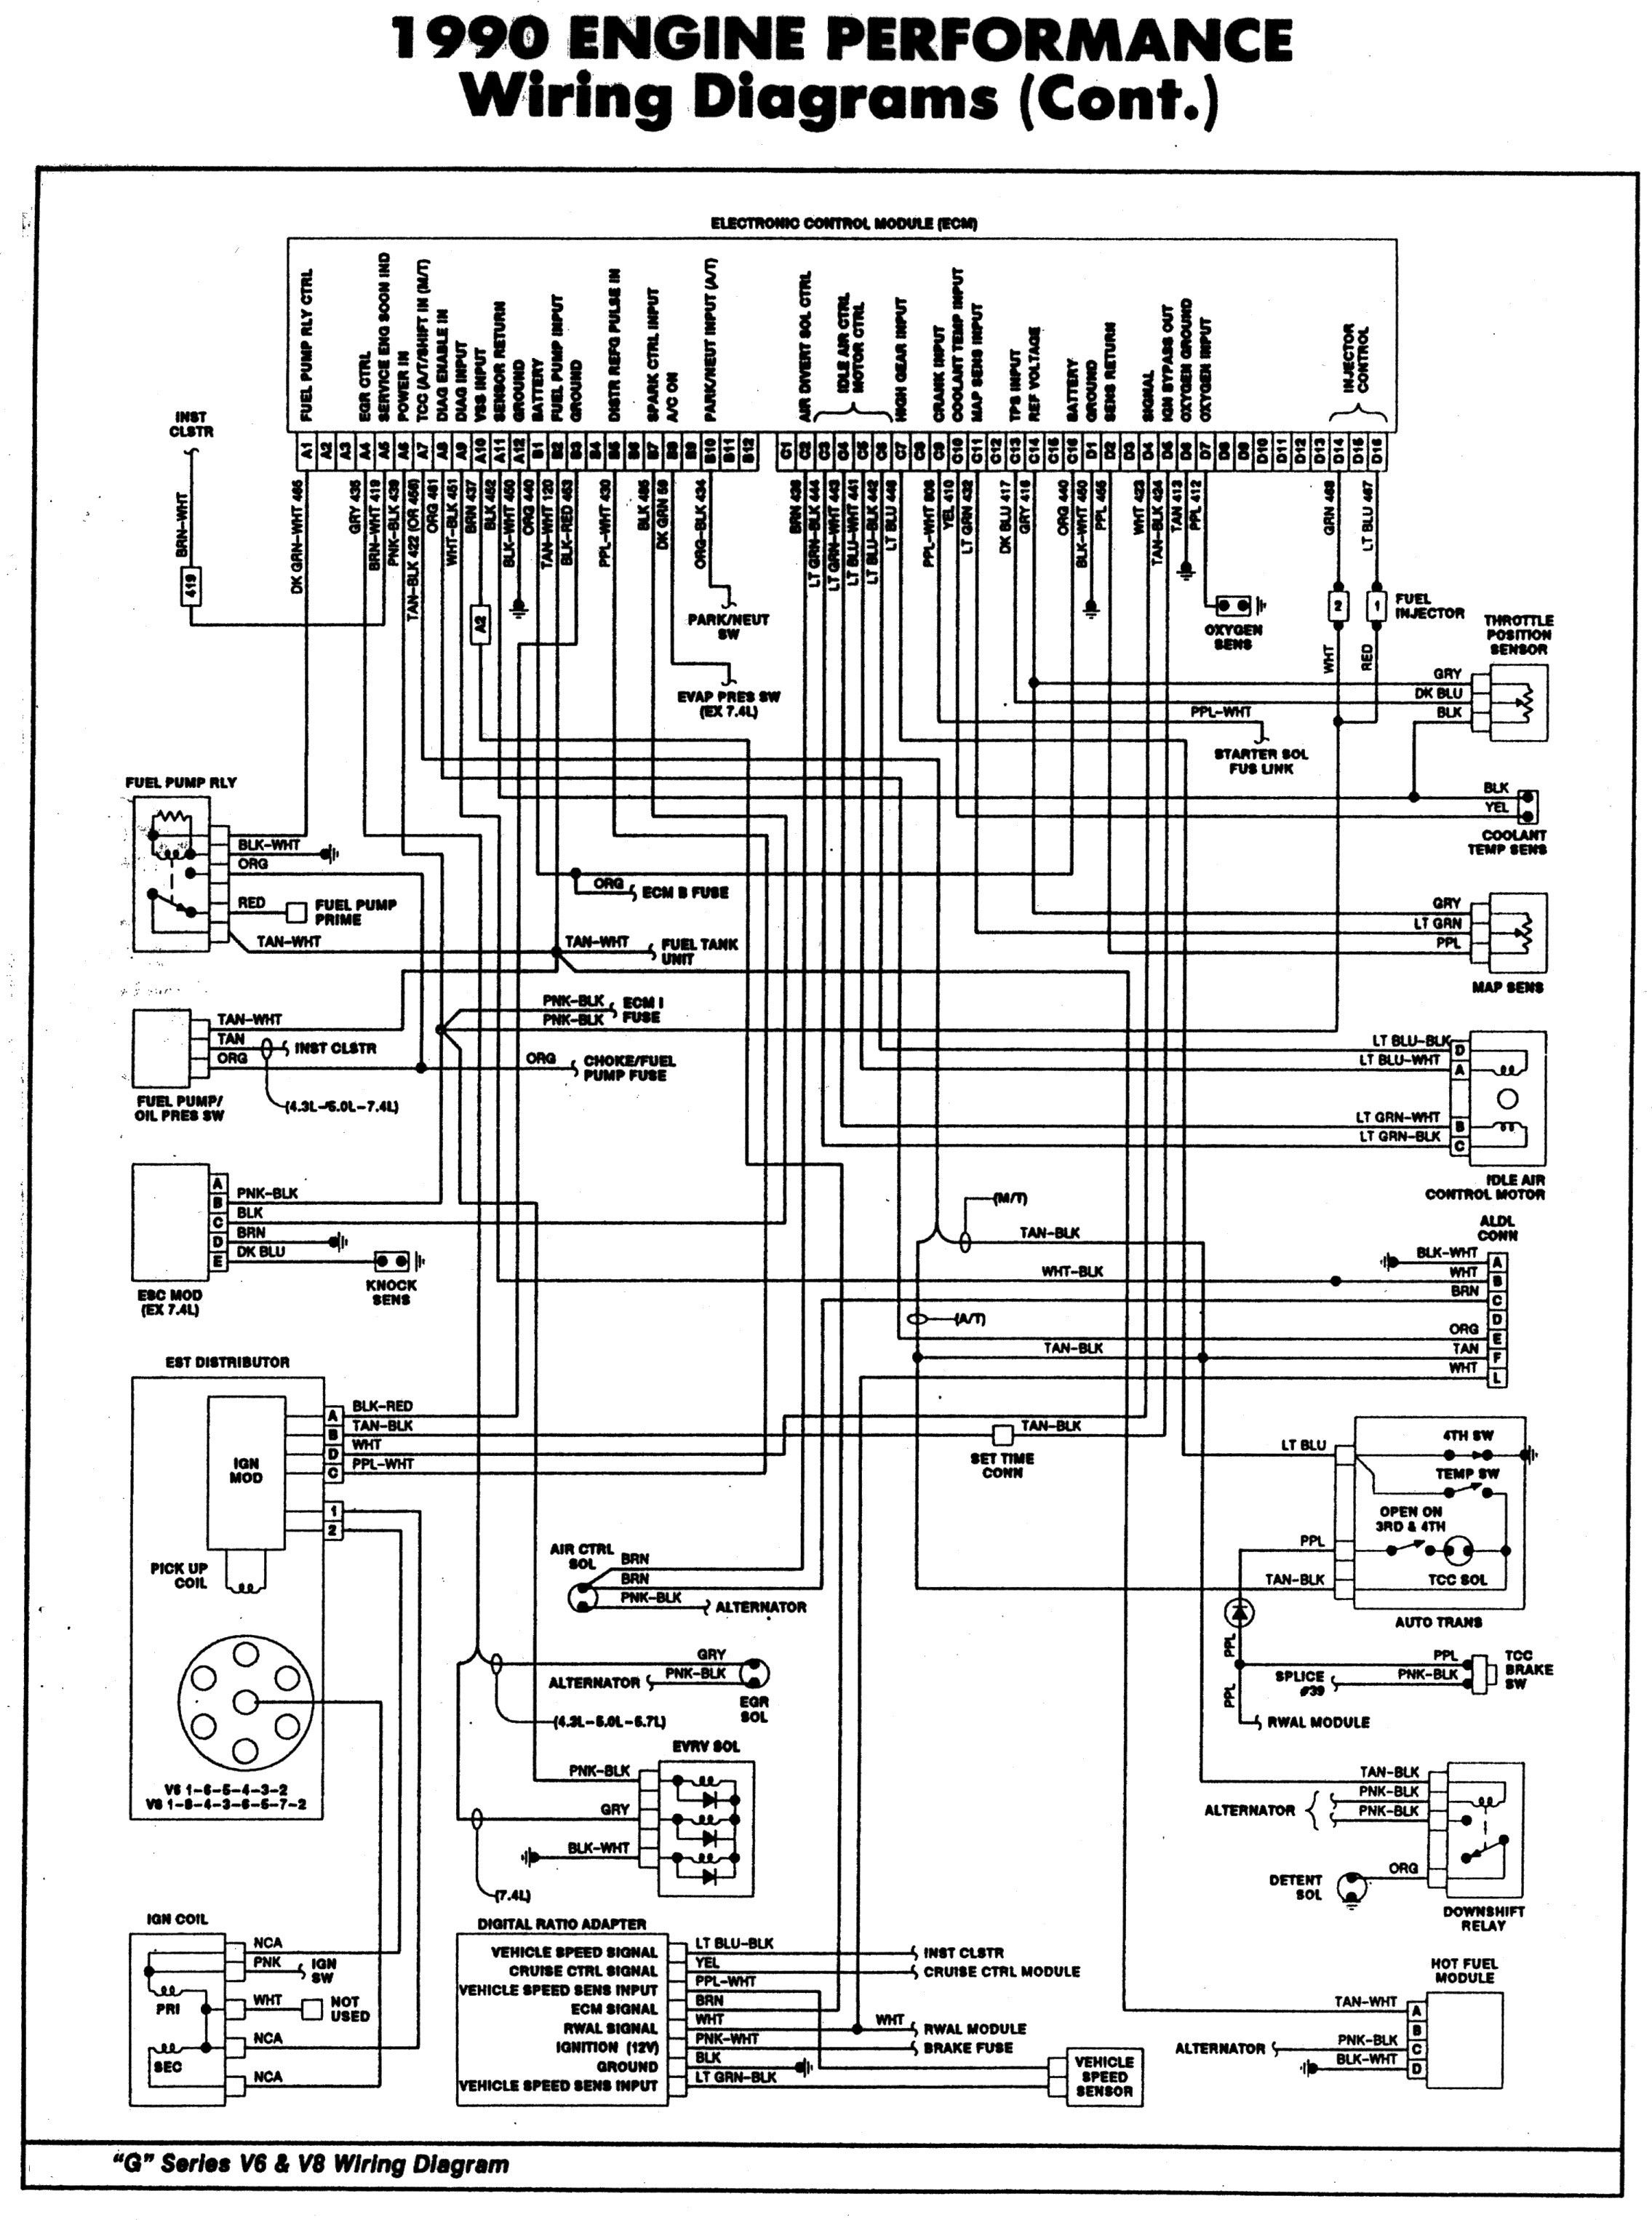 Groovy 94 Gmc Wiring Diagram Schematic Basic Electronics Wiring Diagram Wiring Digital Resources Sapredefiancerspsorg